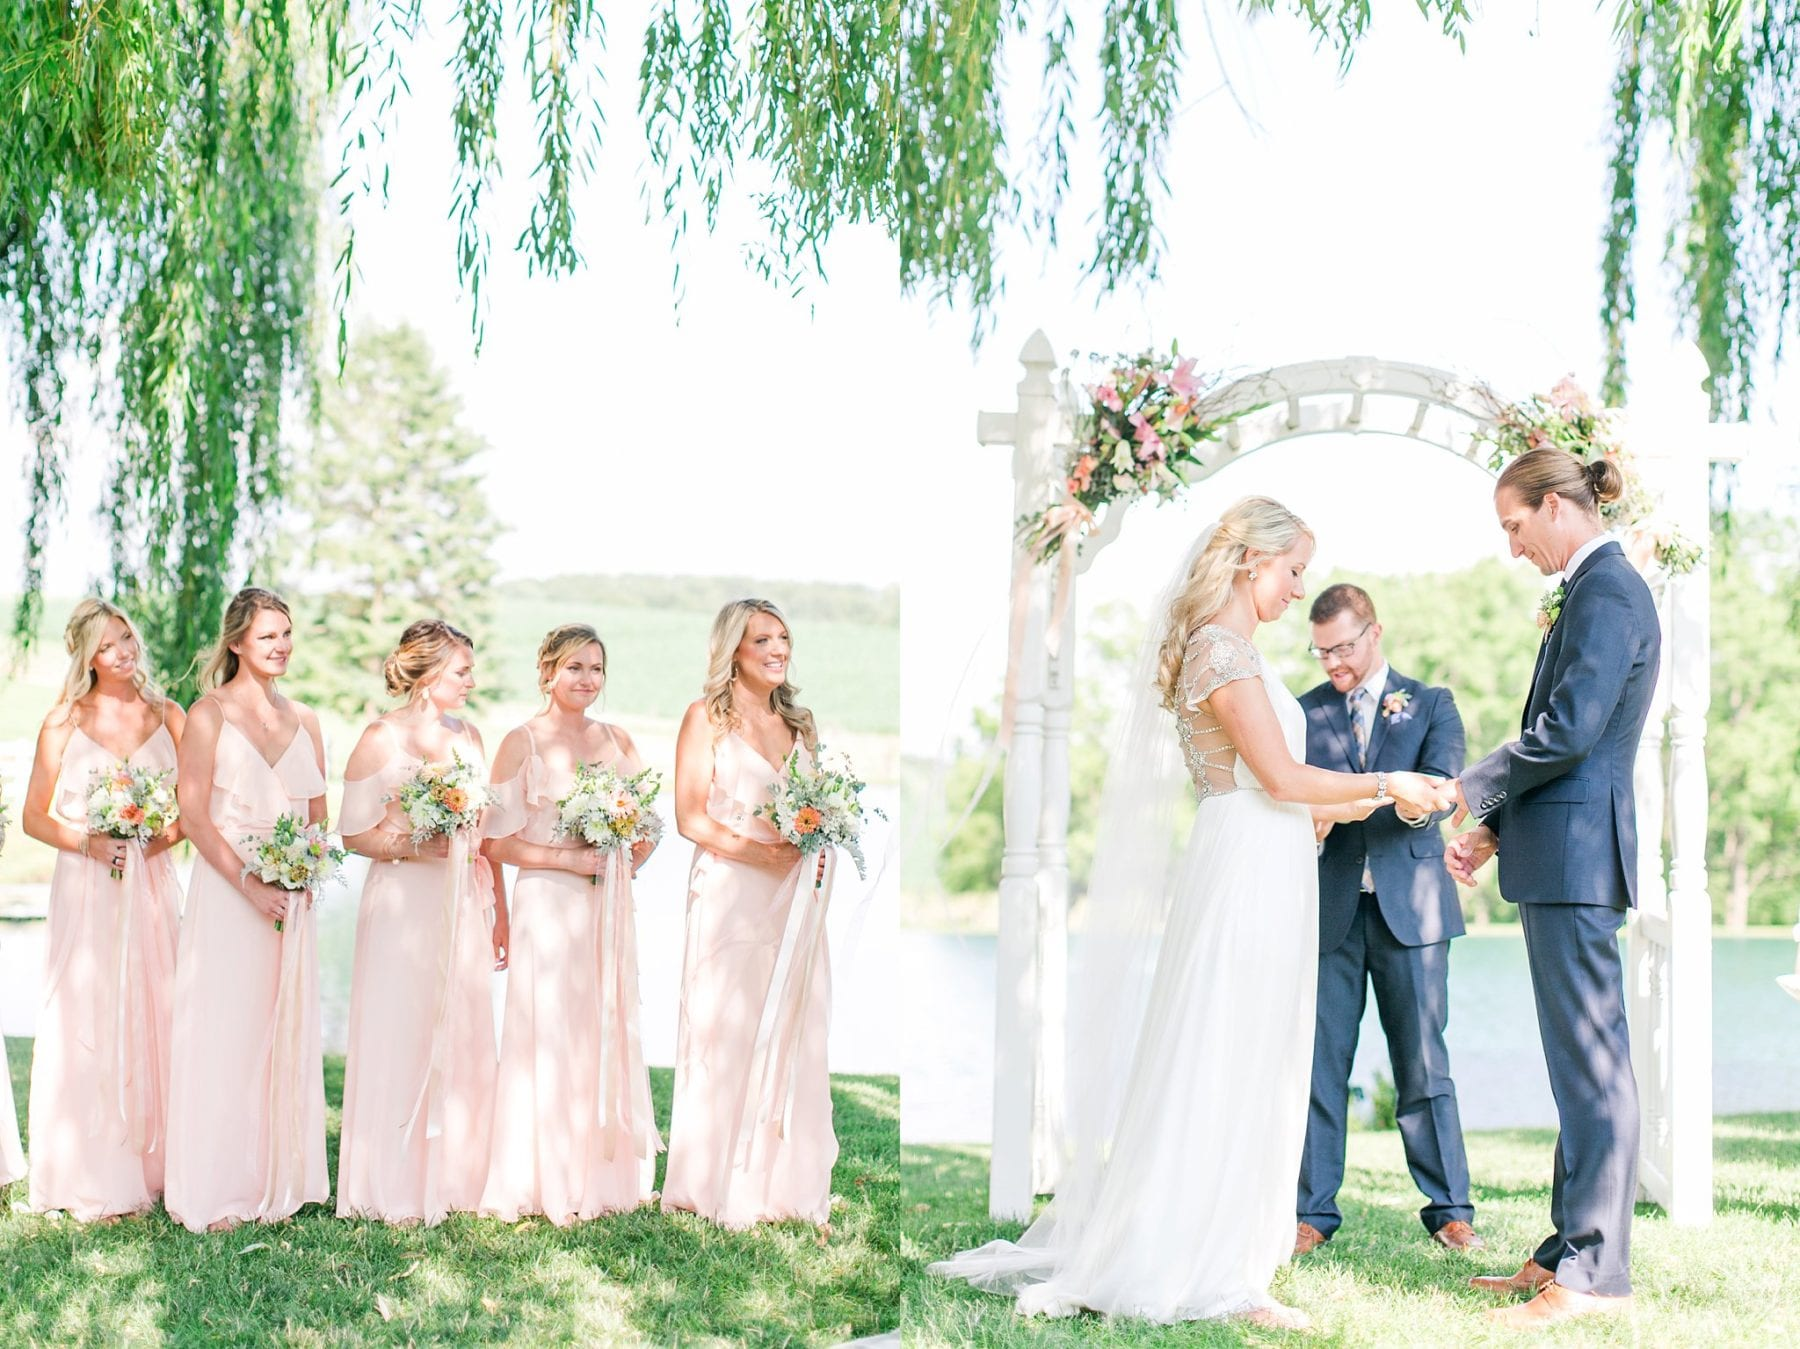 Pond View Farm Wedding Photos Maryland Wedding Photographer Kristen & Ryan Megan Kelsey Photography Blog-122.jpg